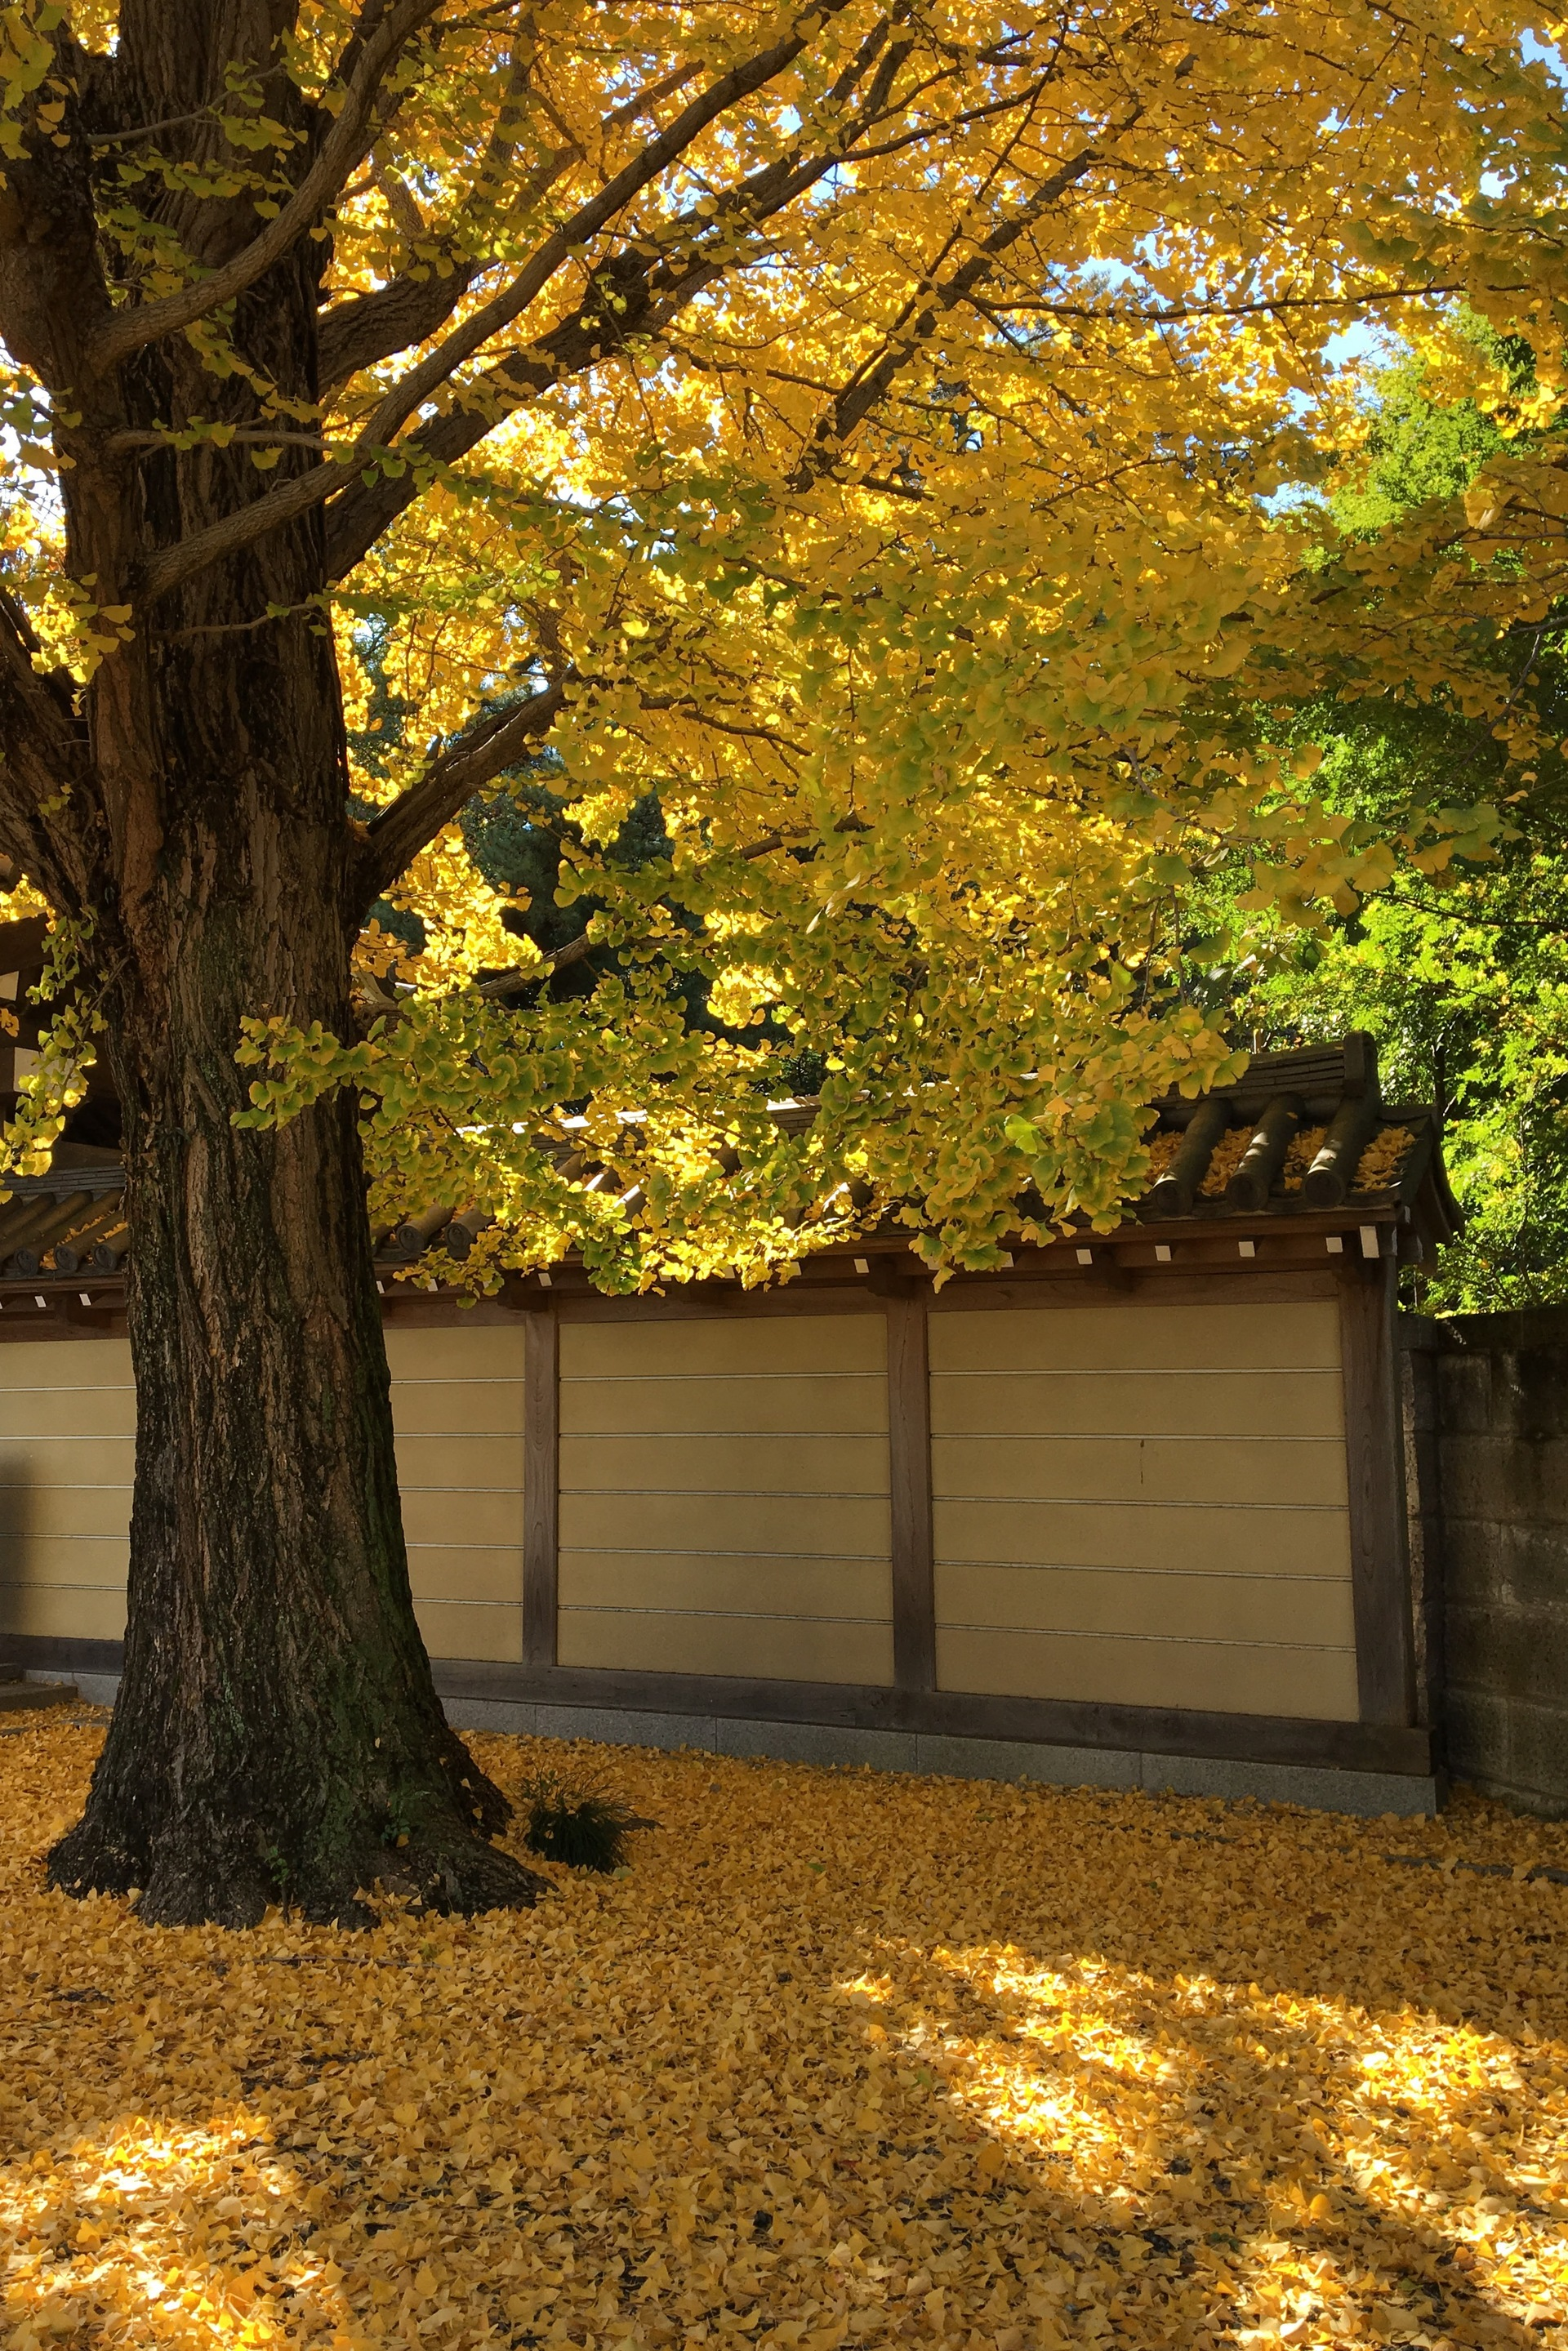 Ginkgo in fall | gato.gordi, autumn, branch, daytime